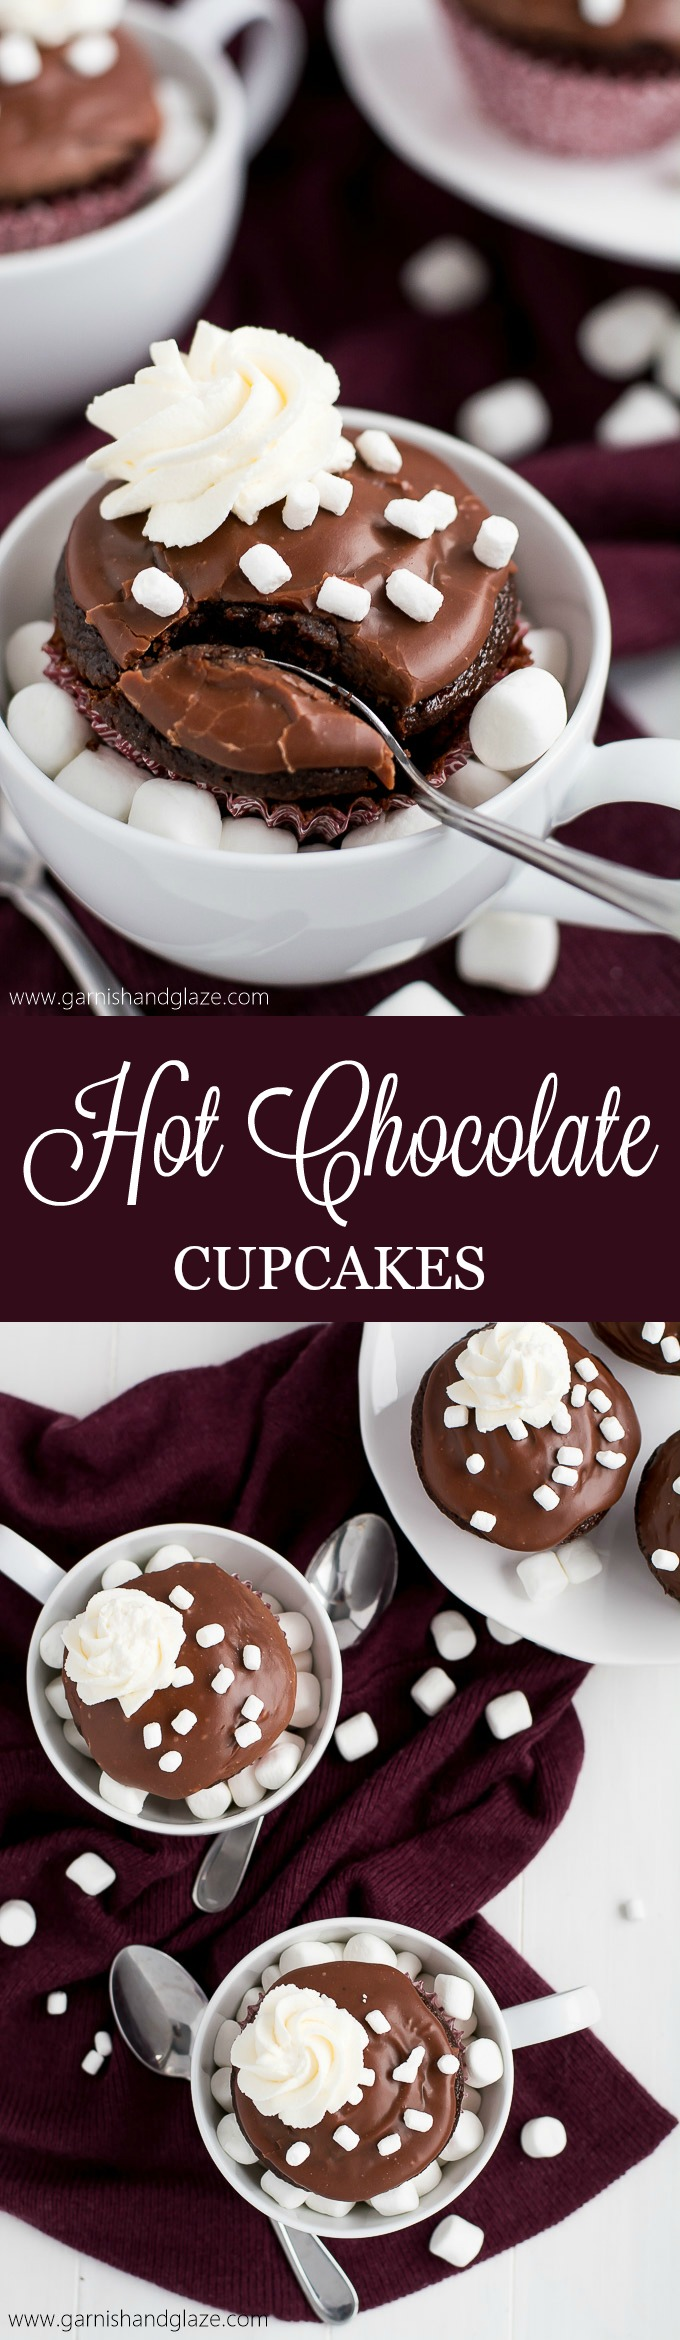 'Tis the season to wrap yourself up in a blanket next to the fireplace with one of these rich and fluffy Hot Chocolate Cupcakes in hand.